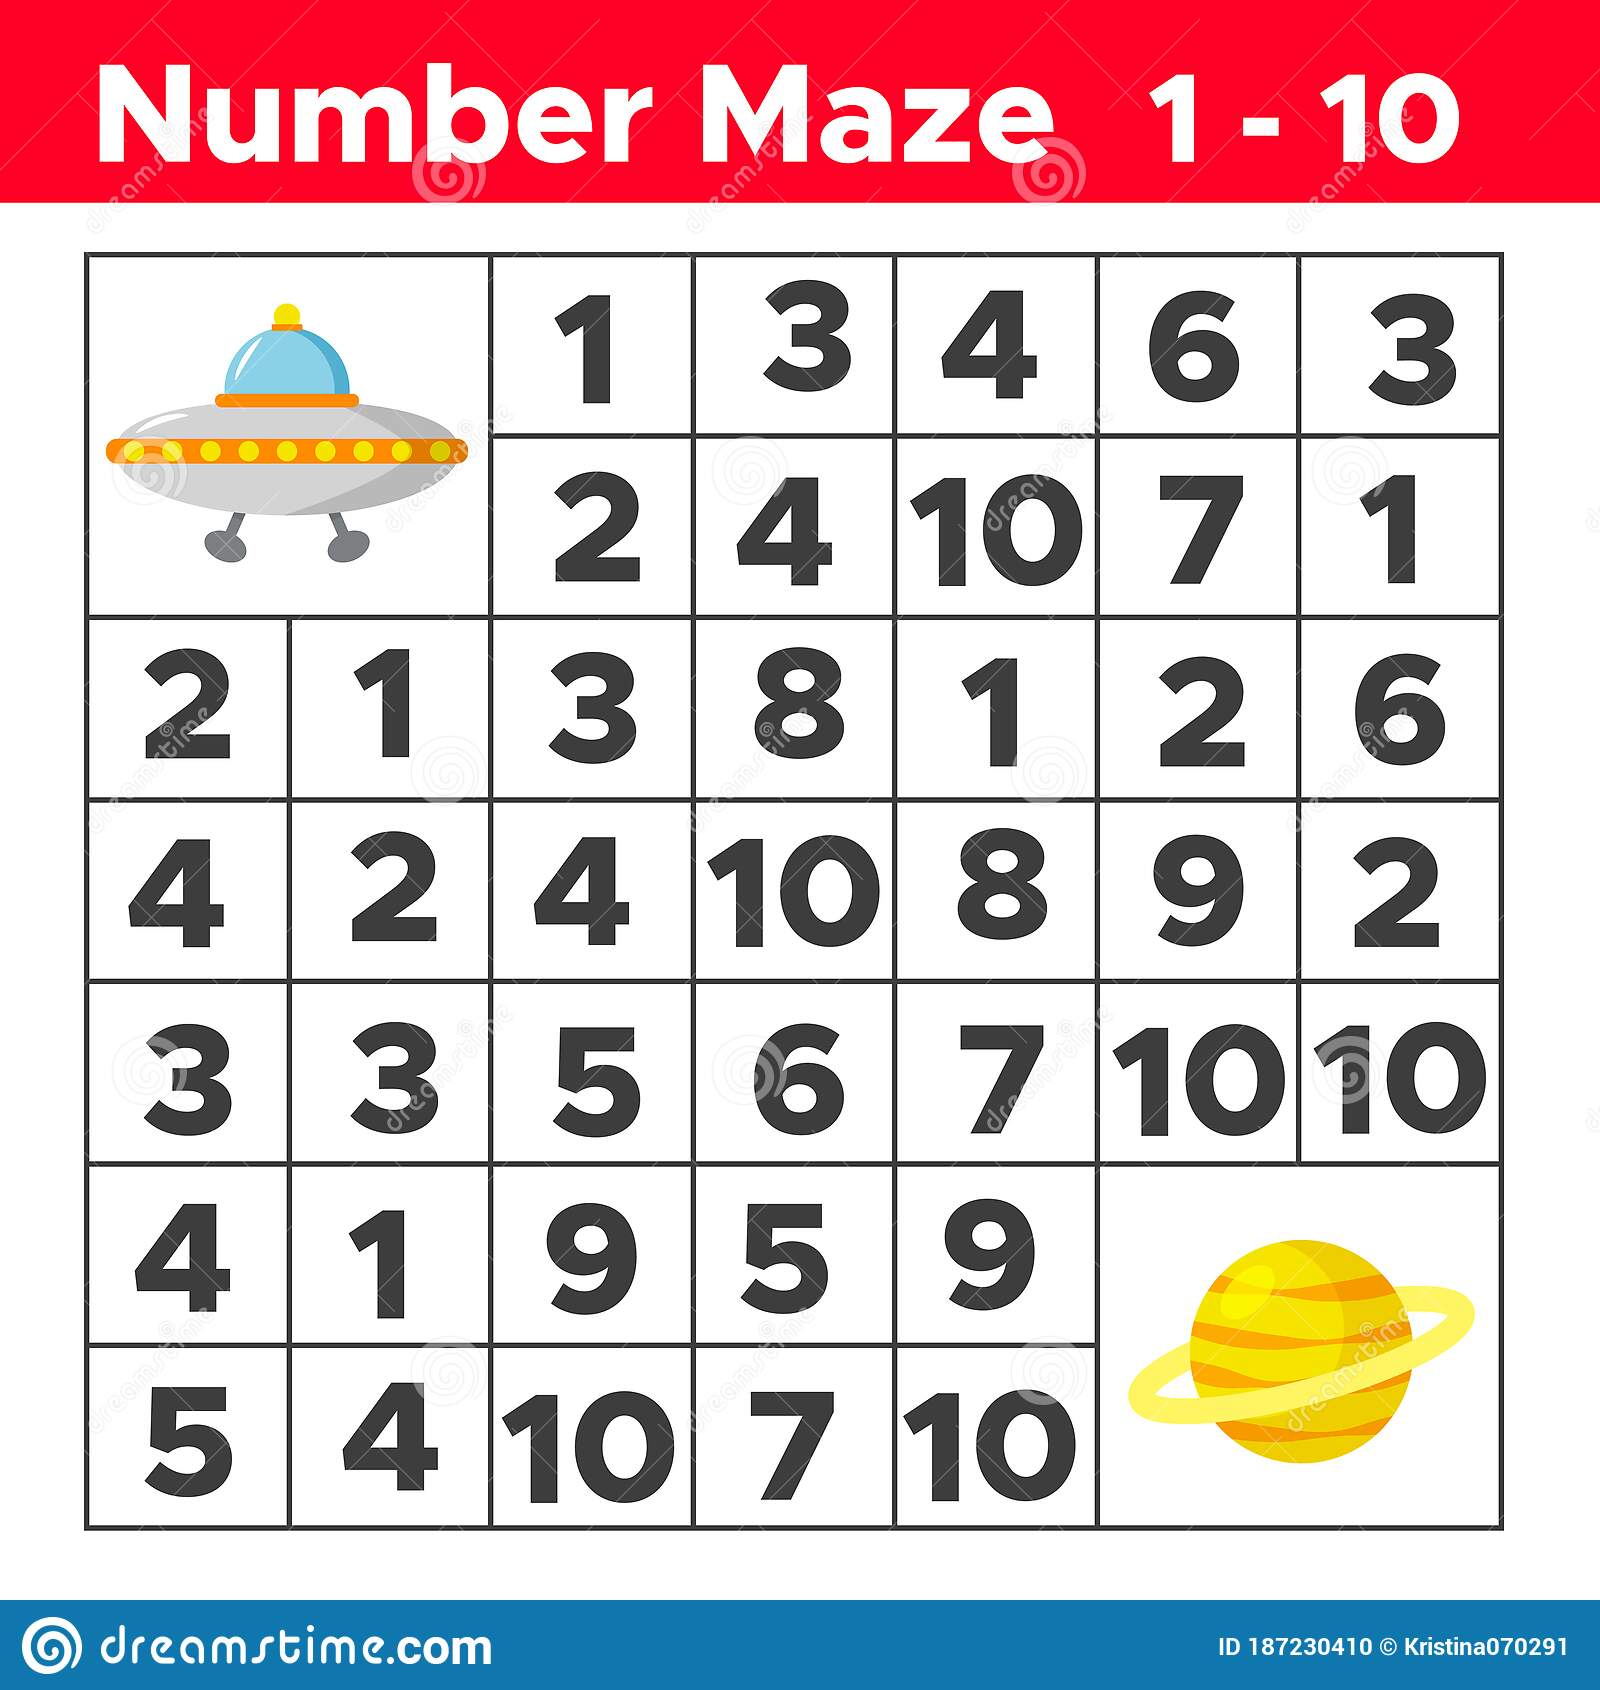 Number Maze Math Puzzle Game For Children Help The Ufo